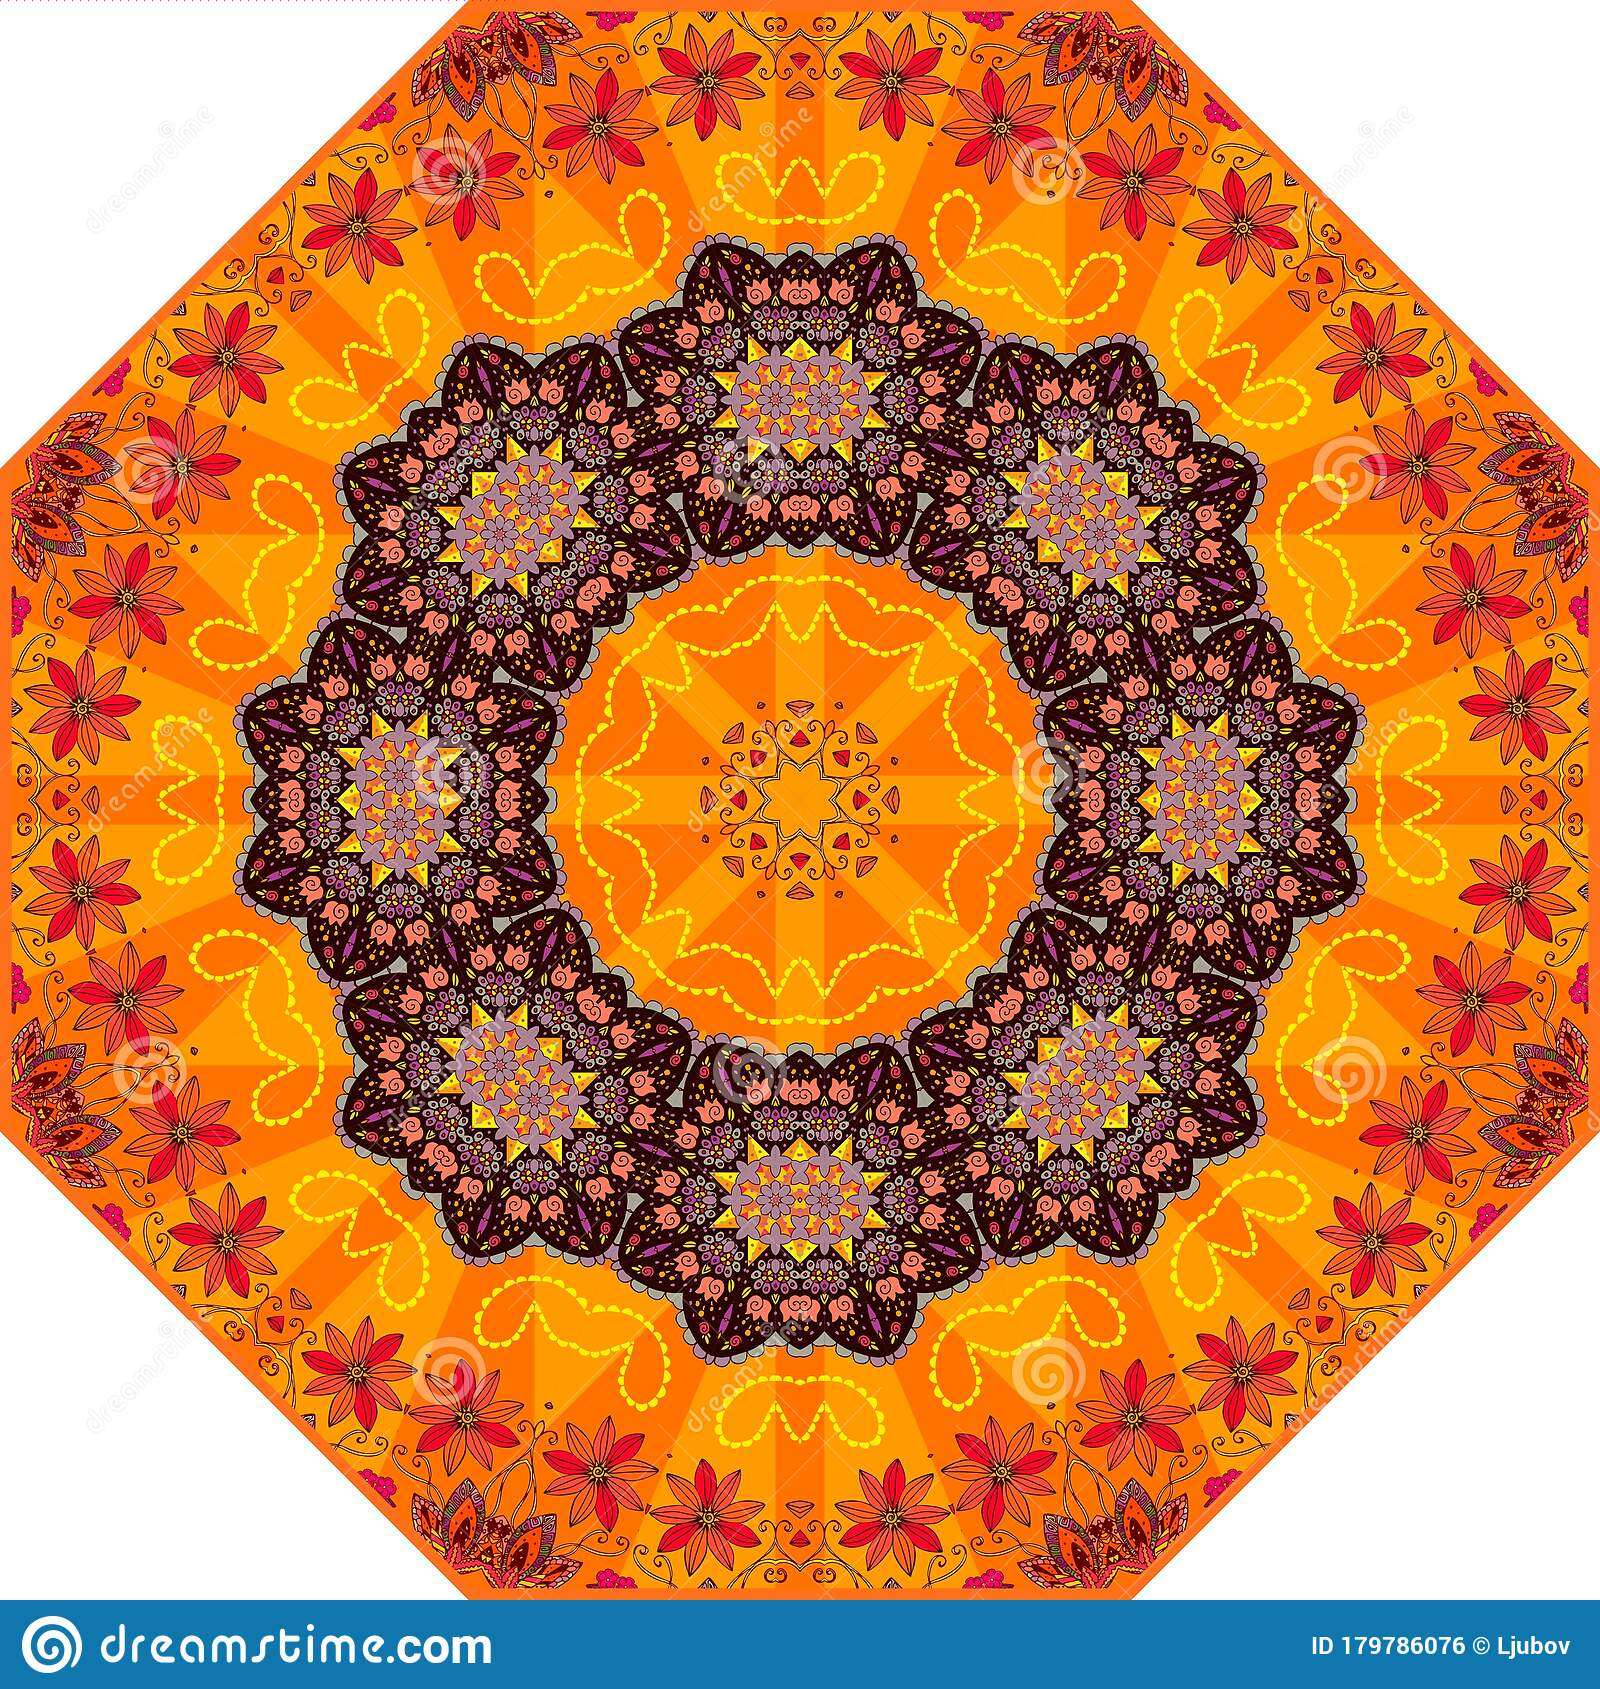 Picture of: Bright Umbrella Template With Beautiful Floral Ornament Summer Design For Napkin Rug Carpet Stock Vector Illustration Of Mandala Orange 179786076